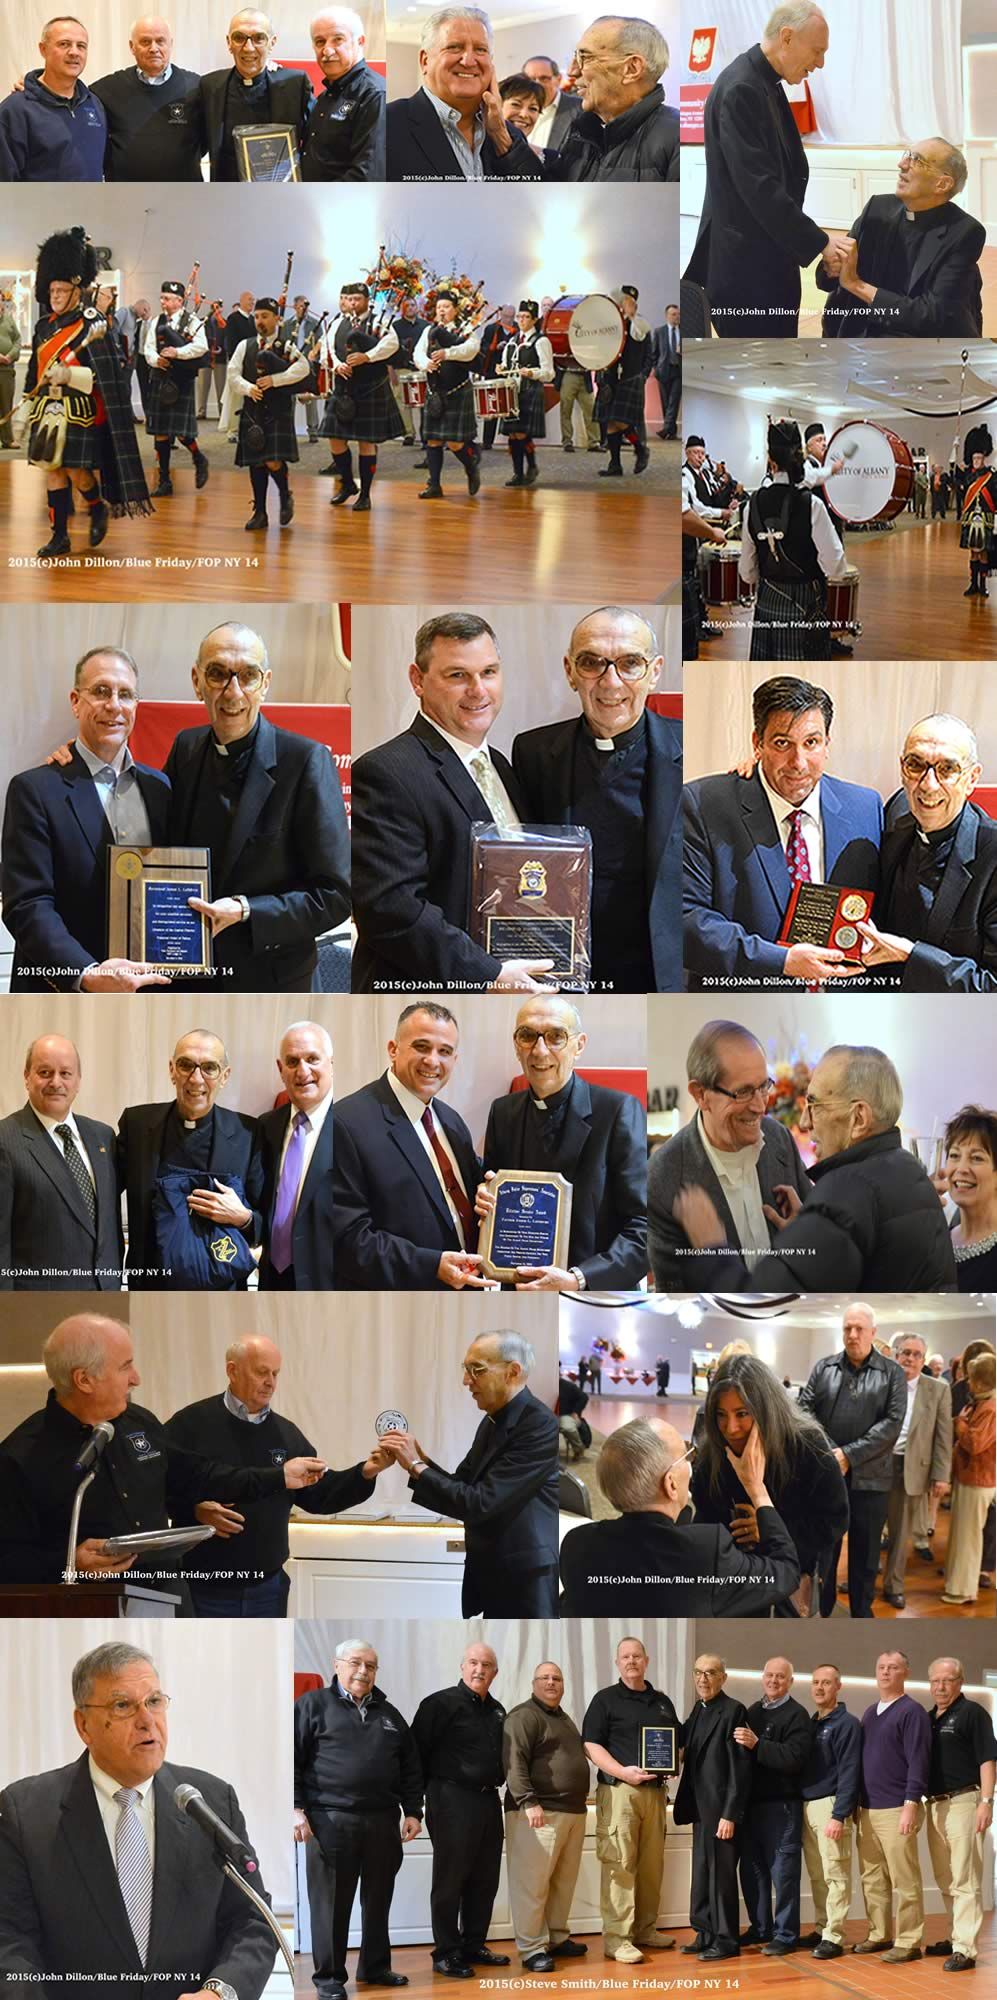 Photos of a LIfe of Service to the Community - a Celebration of Father James Lefebvre's many years of unwavering service to the Law Enforcement Community as seen through the lense of FOP Photographer John Dillon at www.jrdphotog.com